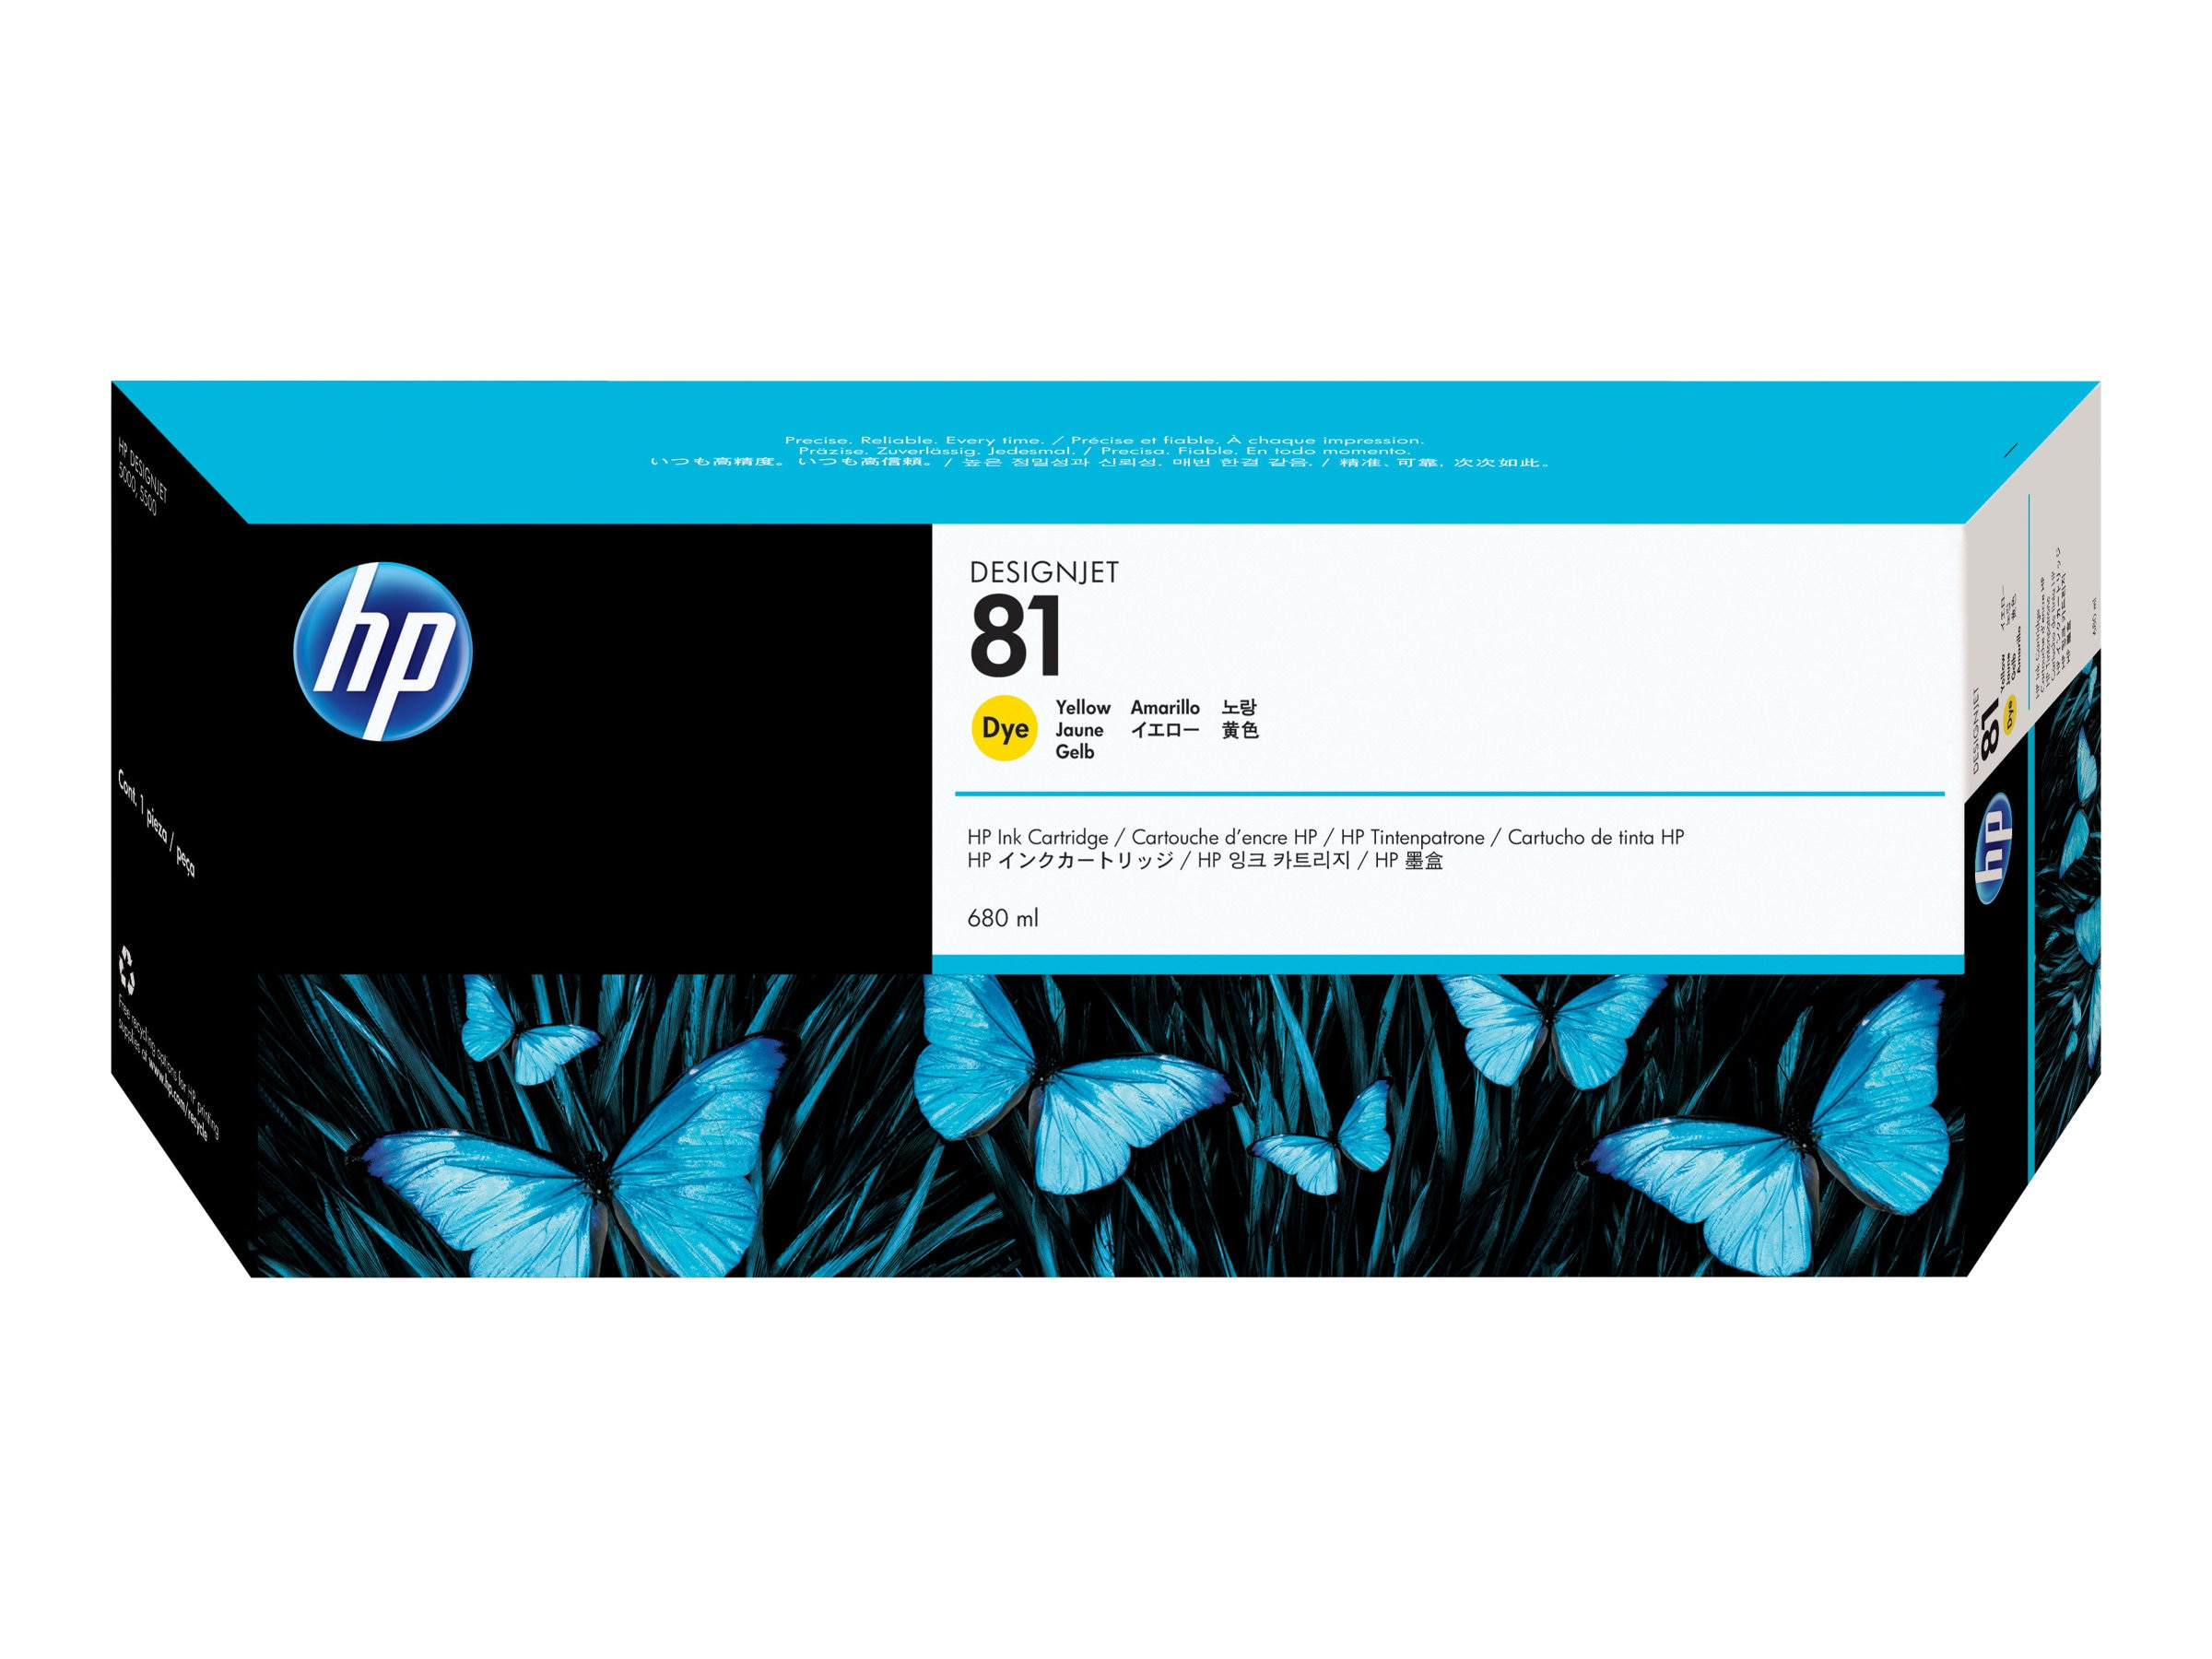 HP 81 Yellow Ink Cartridge for DesignJet 5000 5500 Printers, C4933A